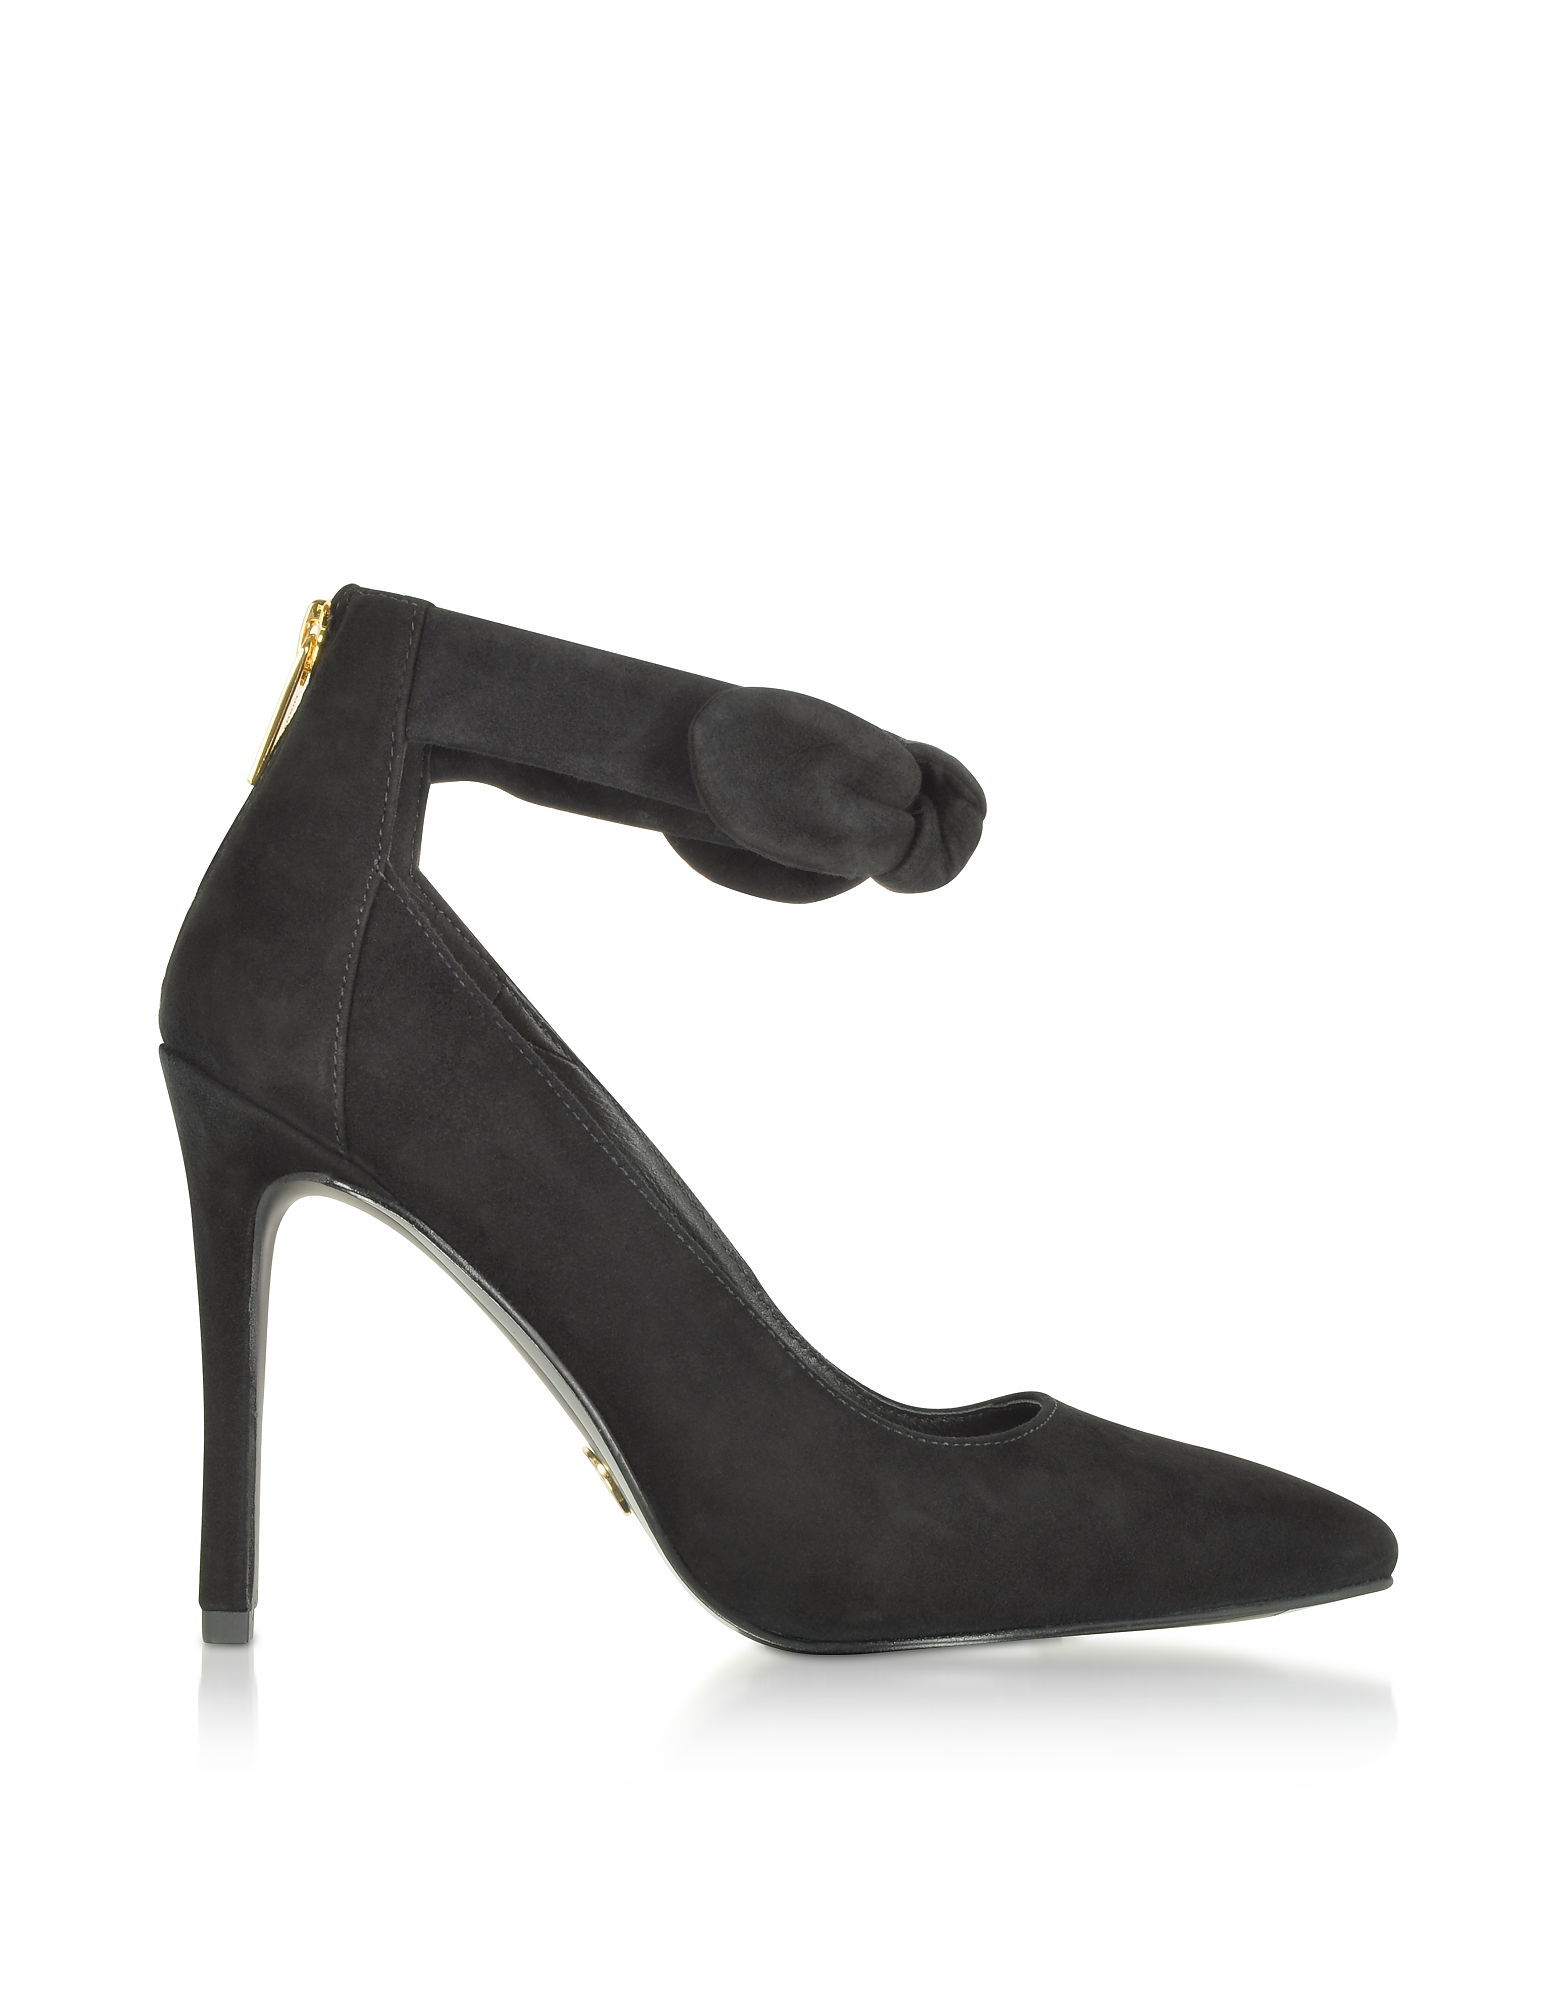 Michael Kors Shoes, Alina Black Suede Heel Pumps